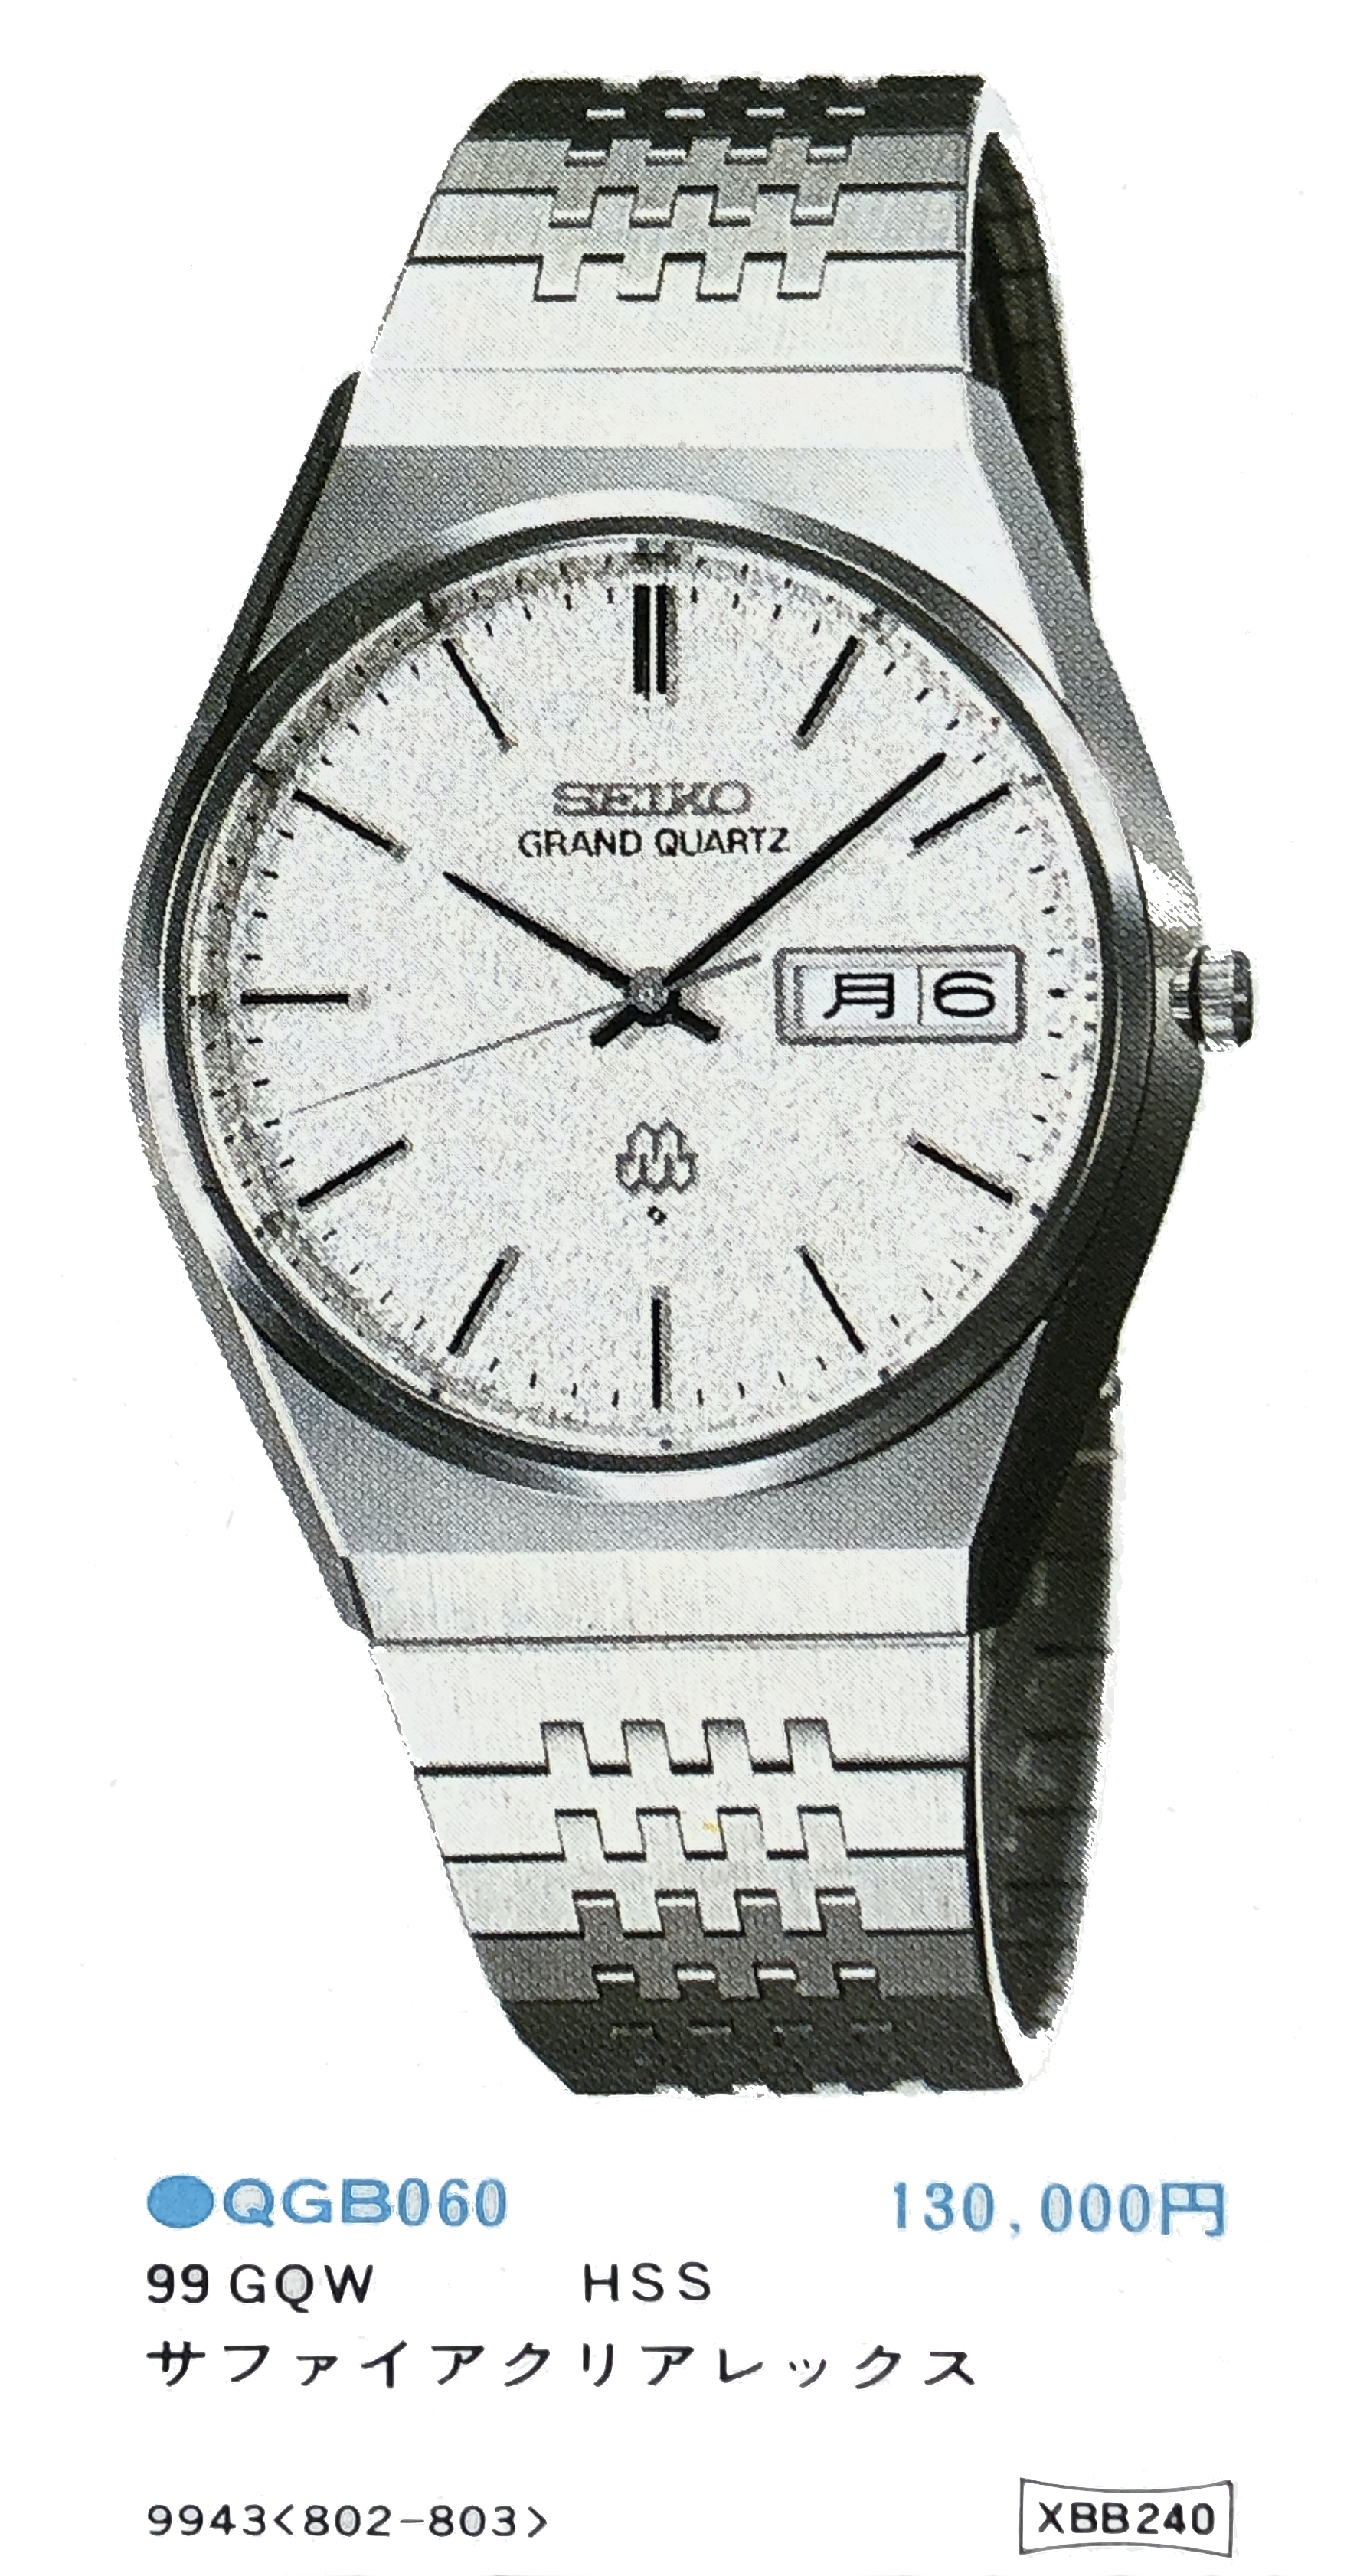 Seiko Grand Quartz 9943-8020 Diamond Dust (Incoming)